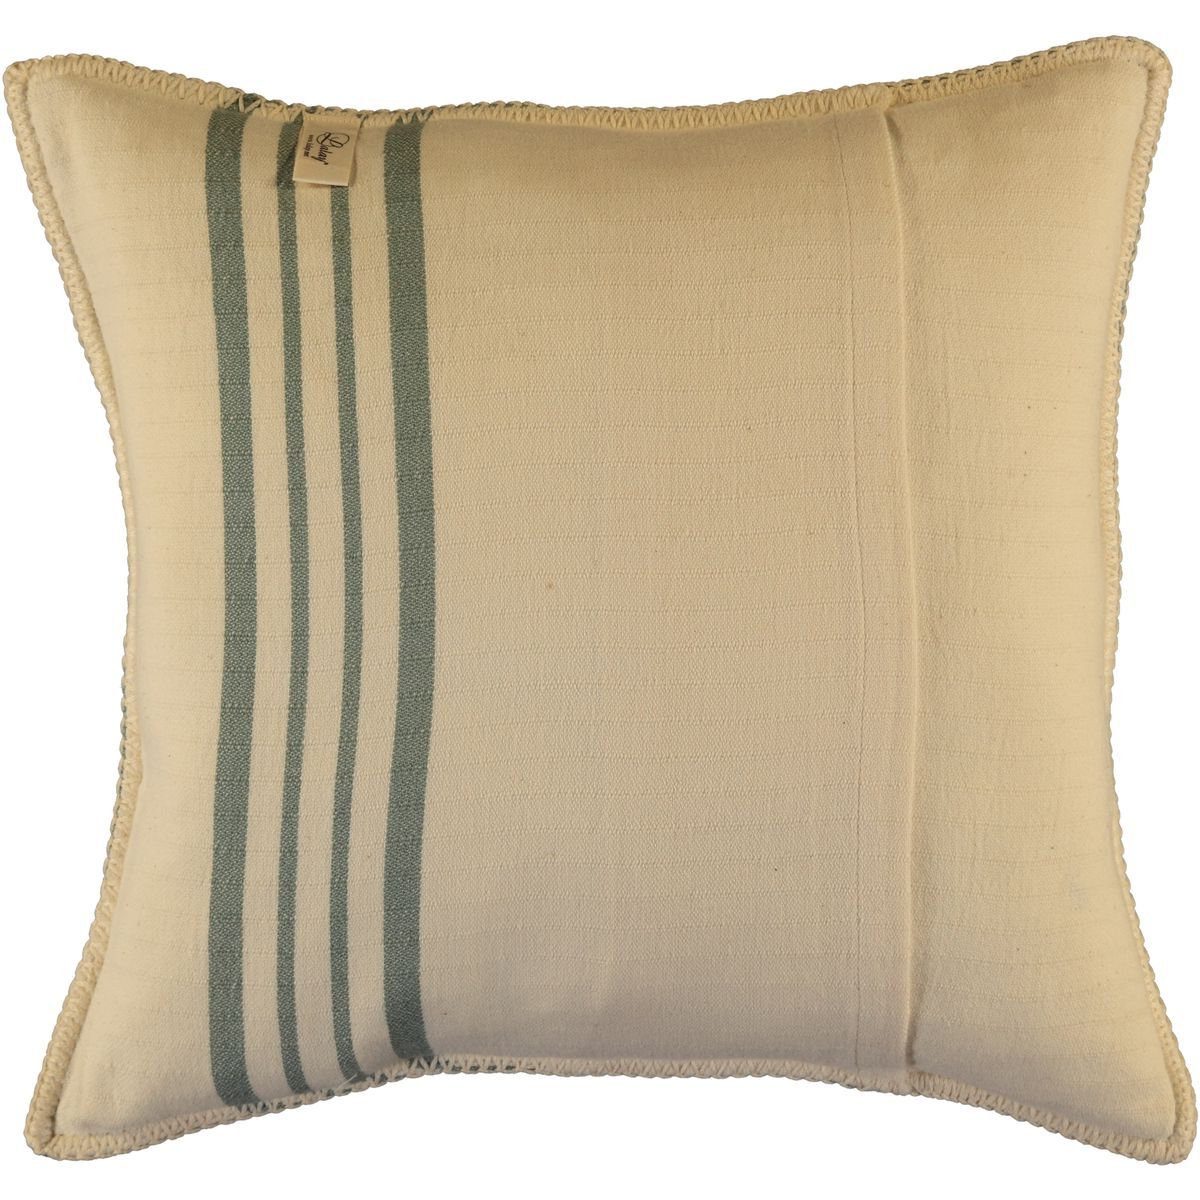 Cushion Cover Sultan - Almond Green / 45x45